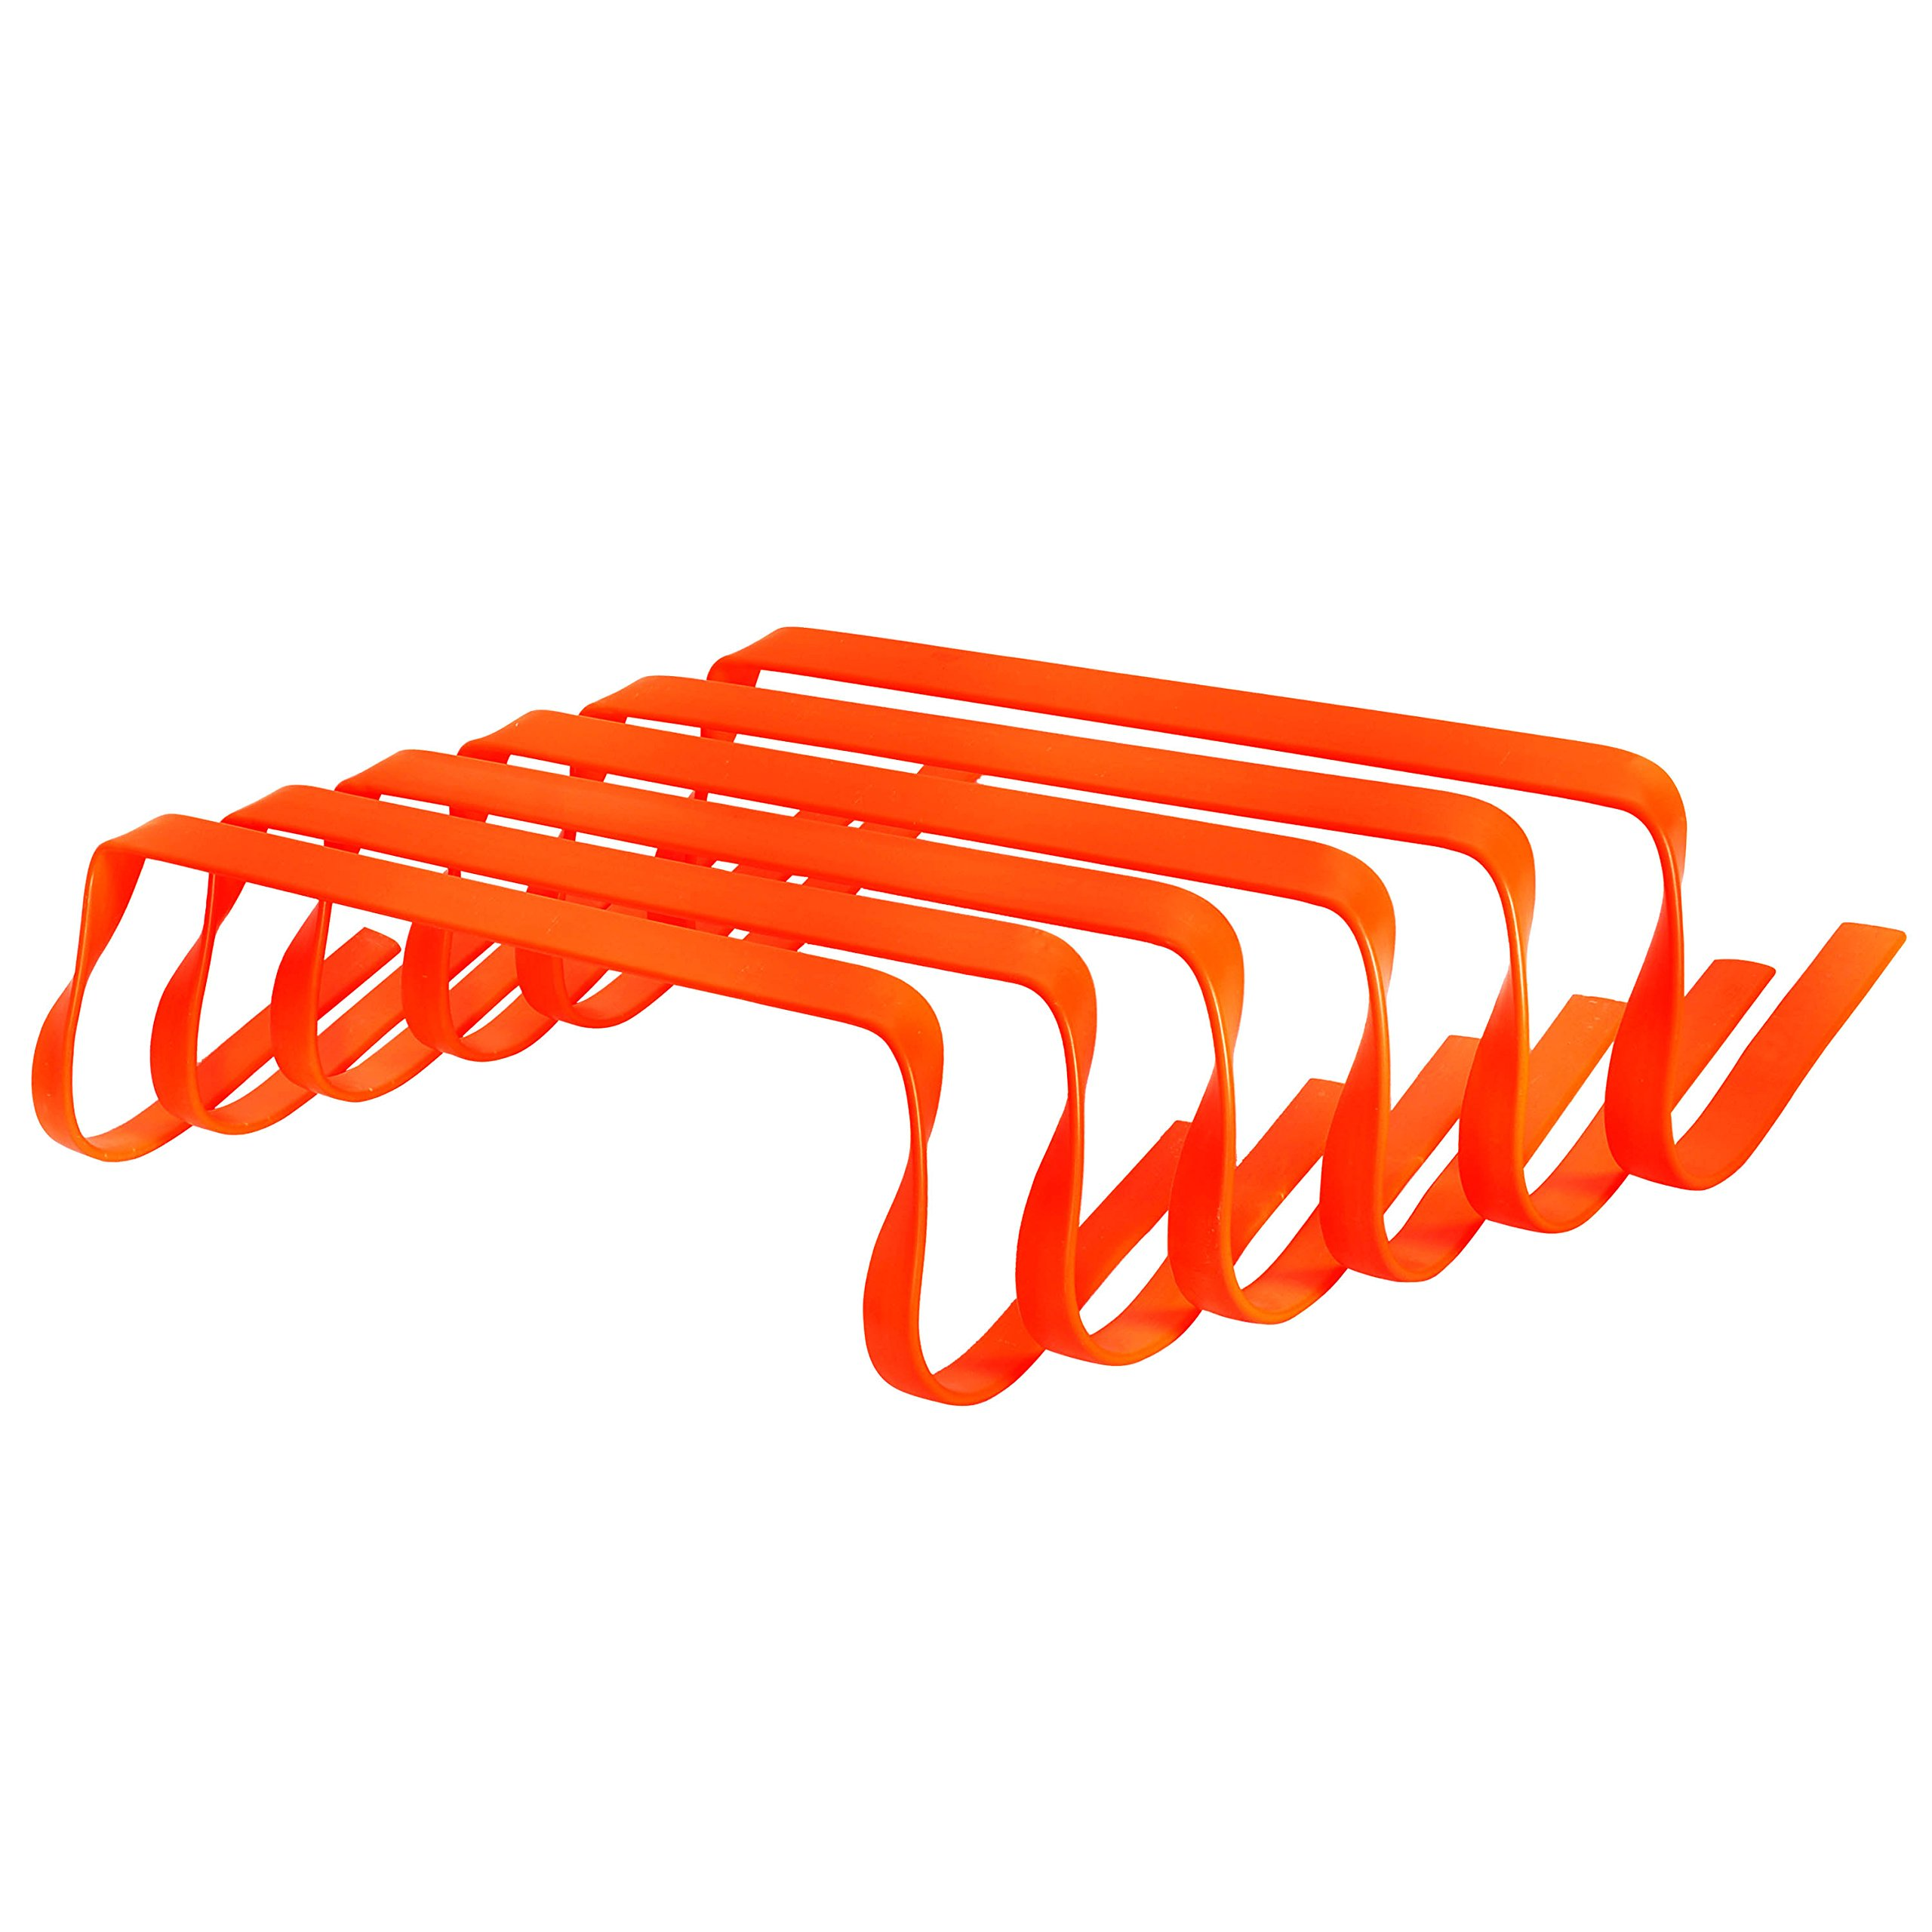 GSI All Purpose Agility Flat Bounce Back Hurdles for Speed Training, track and field coordination and Plyometric Hurdles - Pack of 6 (6 inch)